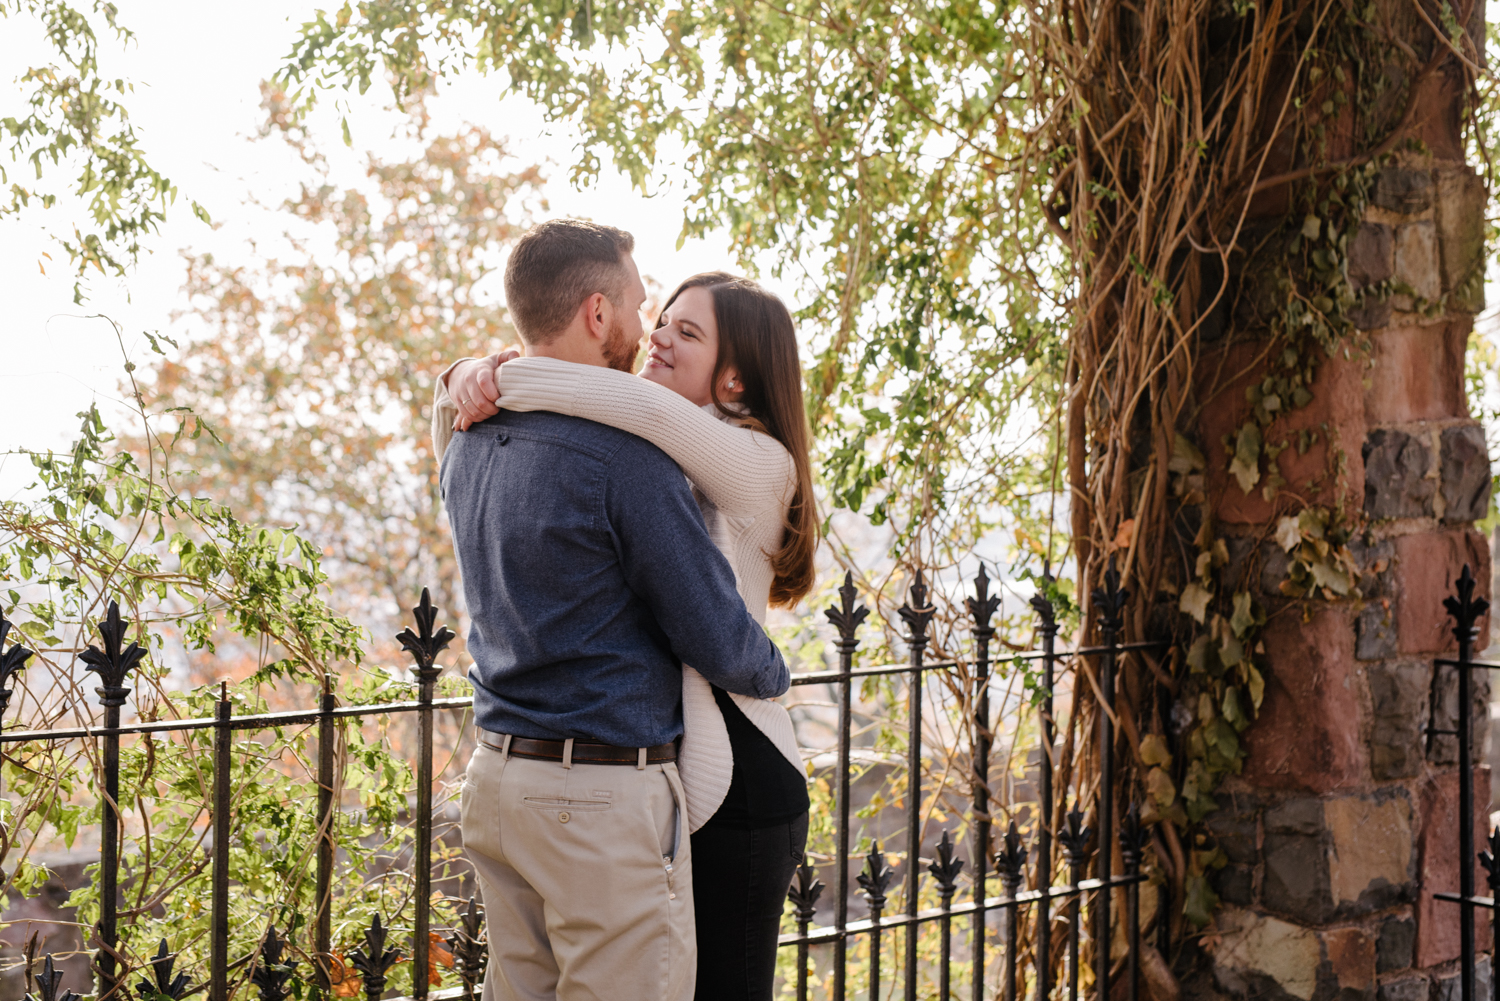 Amy+Brian- Garret Mountain Engagement Session- Fall Nature- Film Photography-New Jersey- Olivia Christina Photo-38.JPG